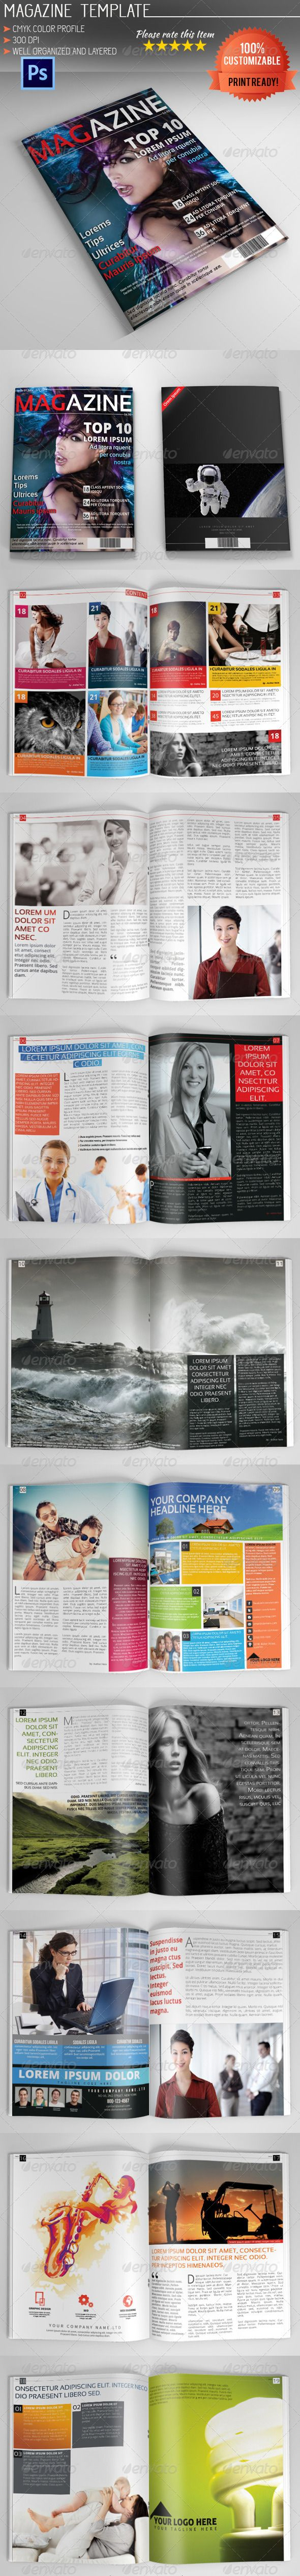 Photoshop Magazine Template Vol.3  #GraphicRiver        Photoshop Magazine Template Vol.1  20 Pages Professional and clean magazine template. Fully layered and very easy to customize. Designed with adobe photoshop CS5 (works with CS2 and higher).    Smart Objects ( Help! )  CMYK Colors  300DPI  Print Ready  20 Pages  A4  Free Fonts Used:   .fontsquirrel /fonts/Sansation   .fontsquirrel /fonts/open-sans  *Photos in the preview image are NOT included!   Please don't forget to rate my items…